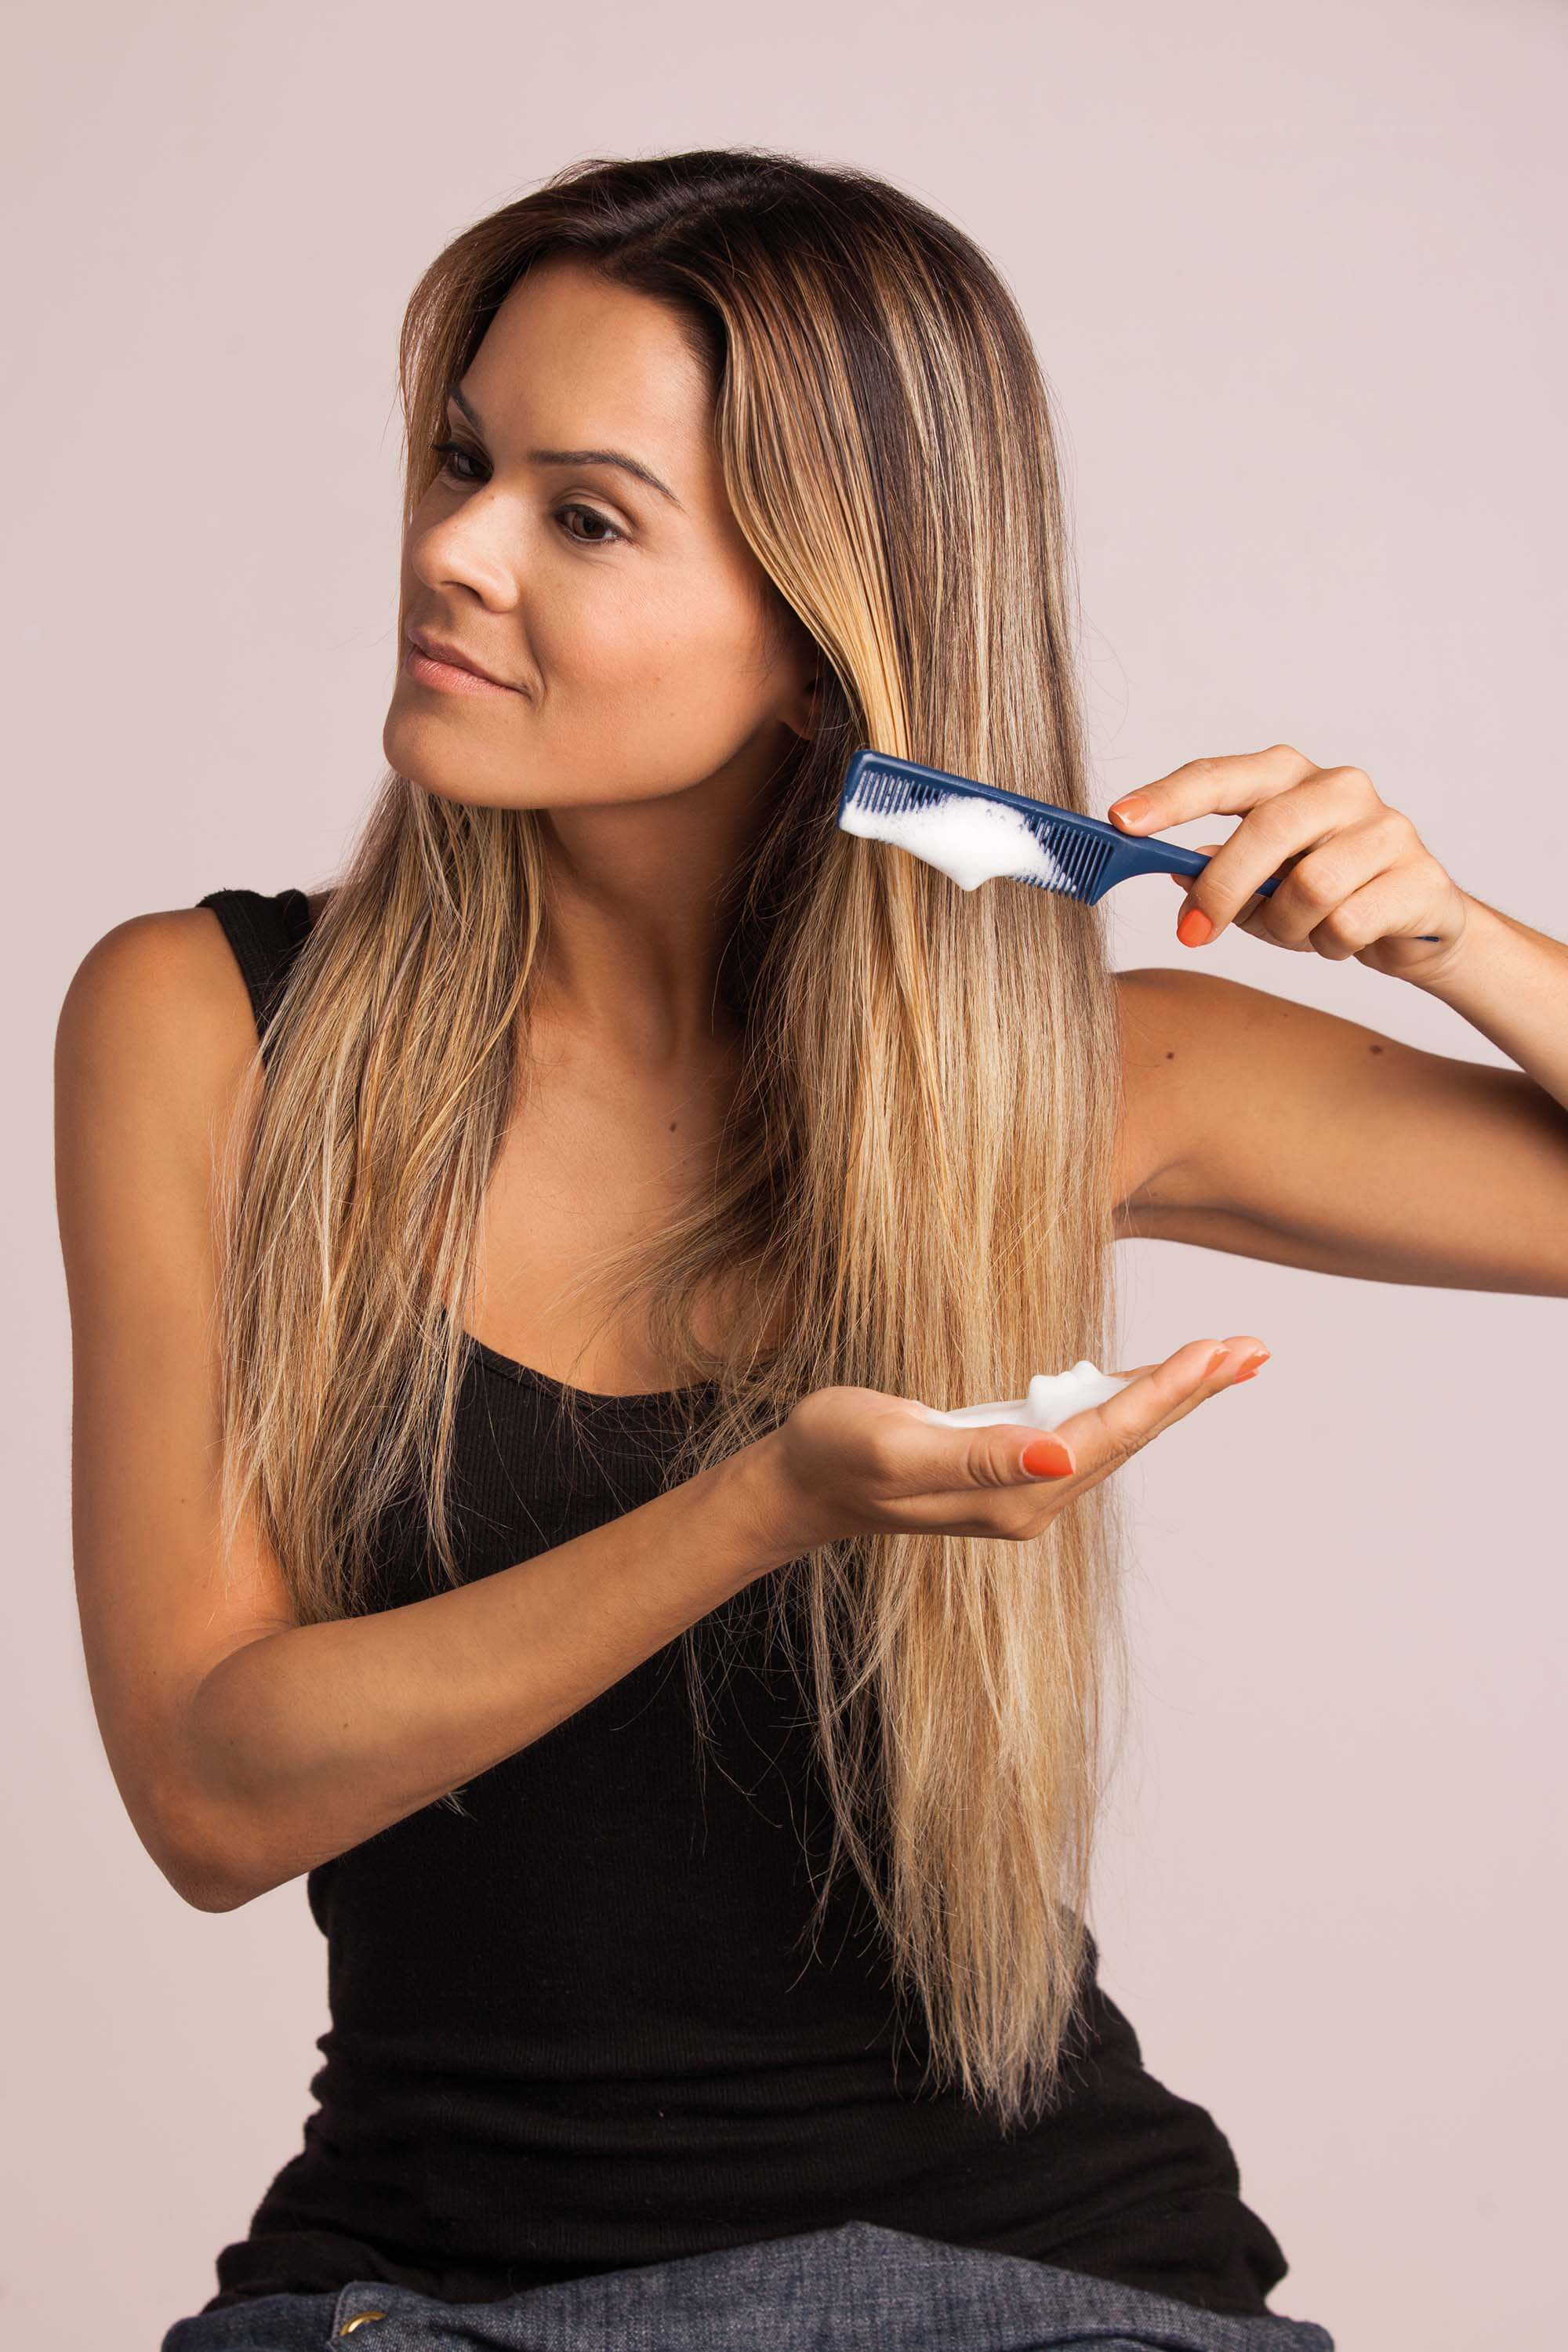 How To Use Hair Mousse For Best Results